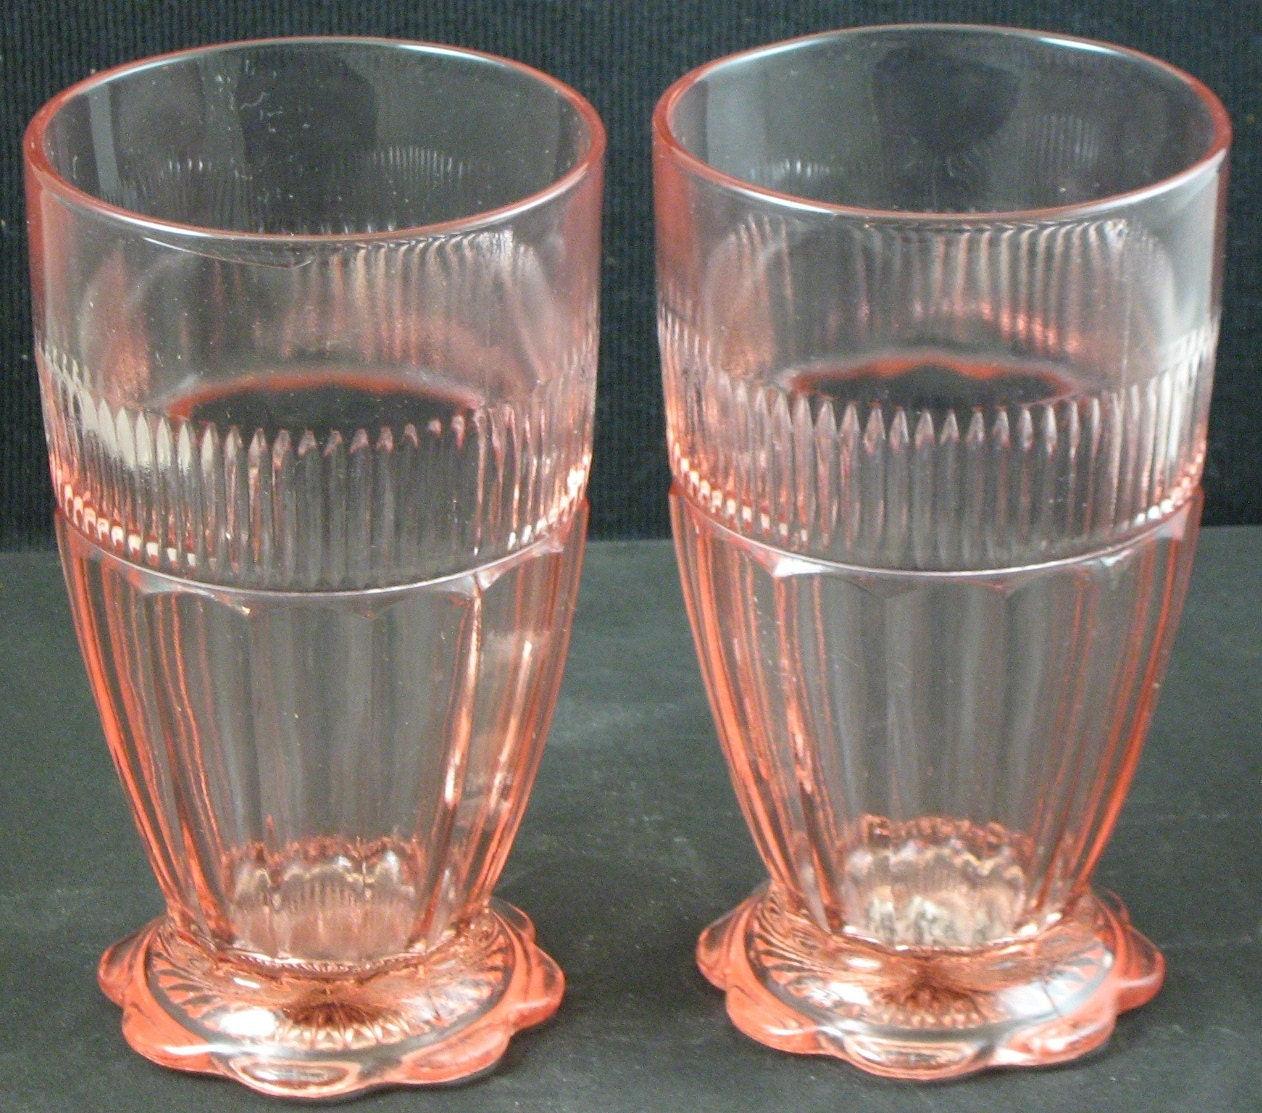 Lot of 2 Vintage Hocking Coronation Pink Depression Glass